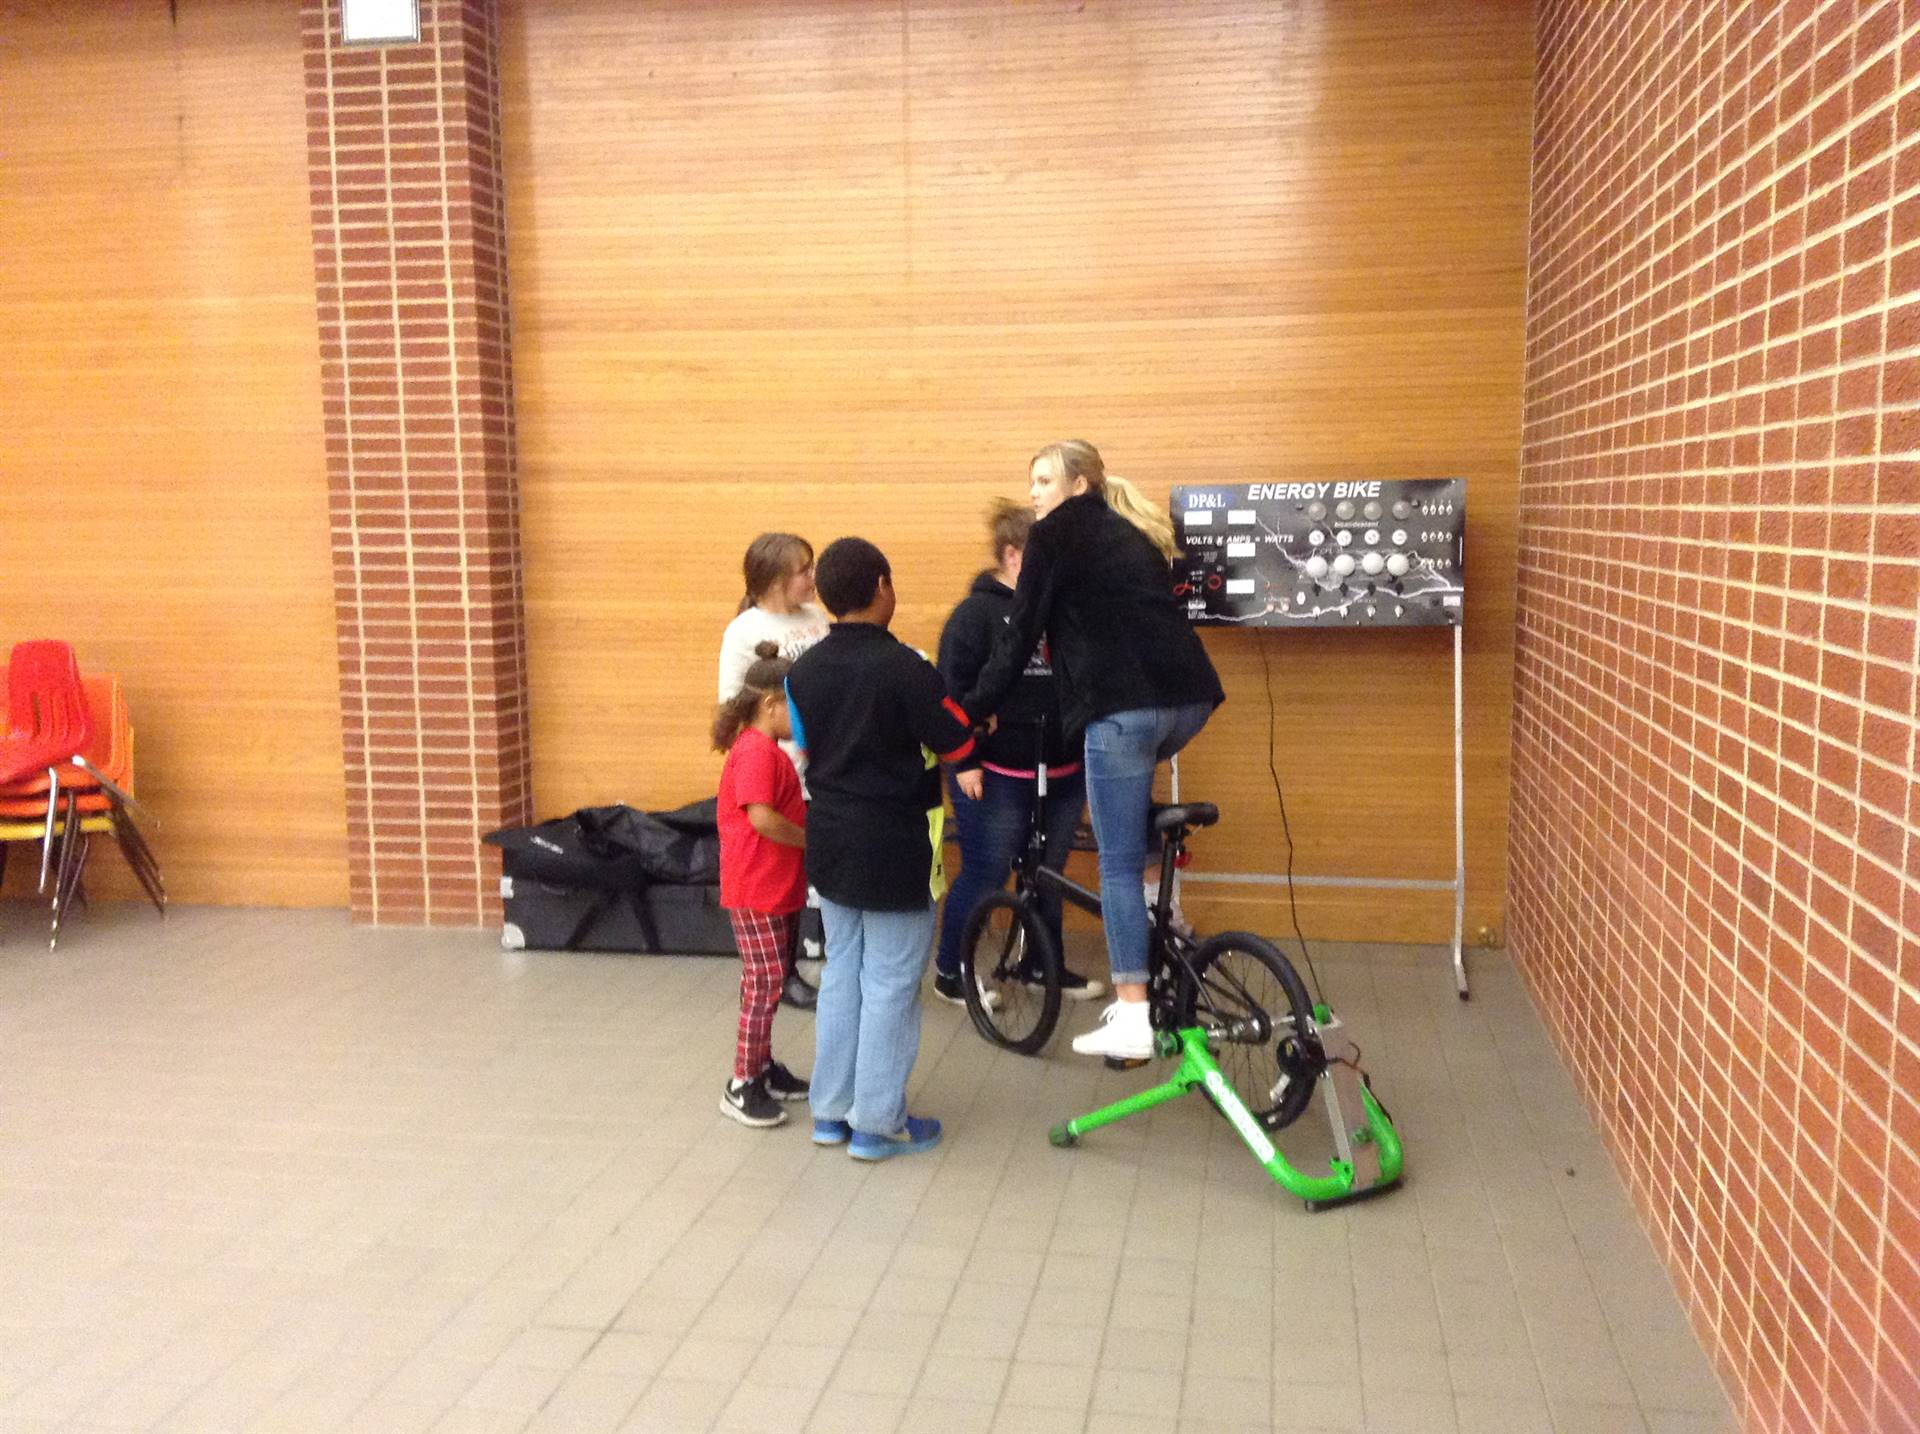 Mrs. Ackerman's students share energy activities with visiting families.